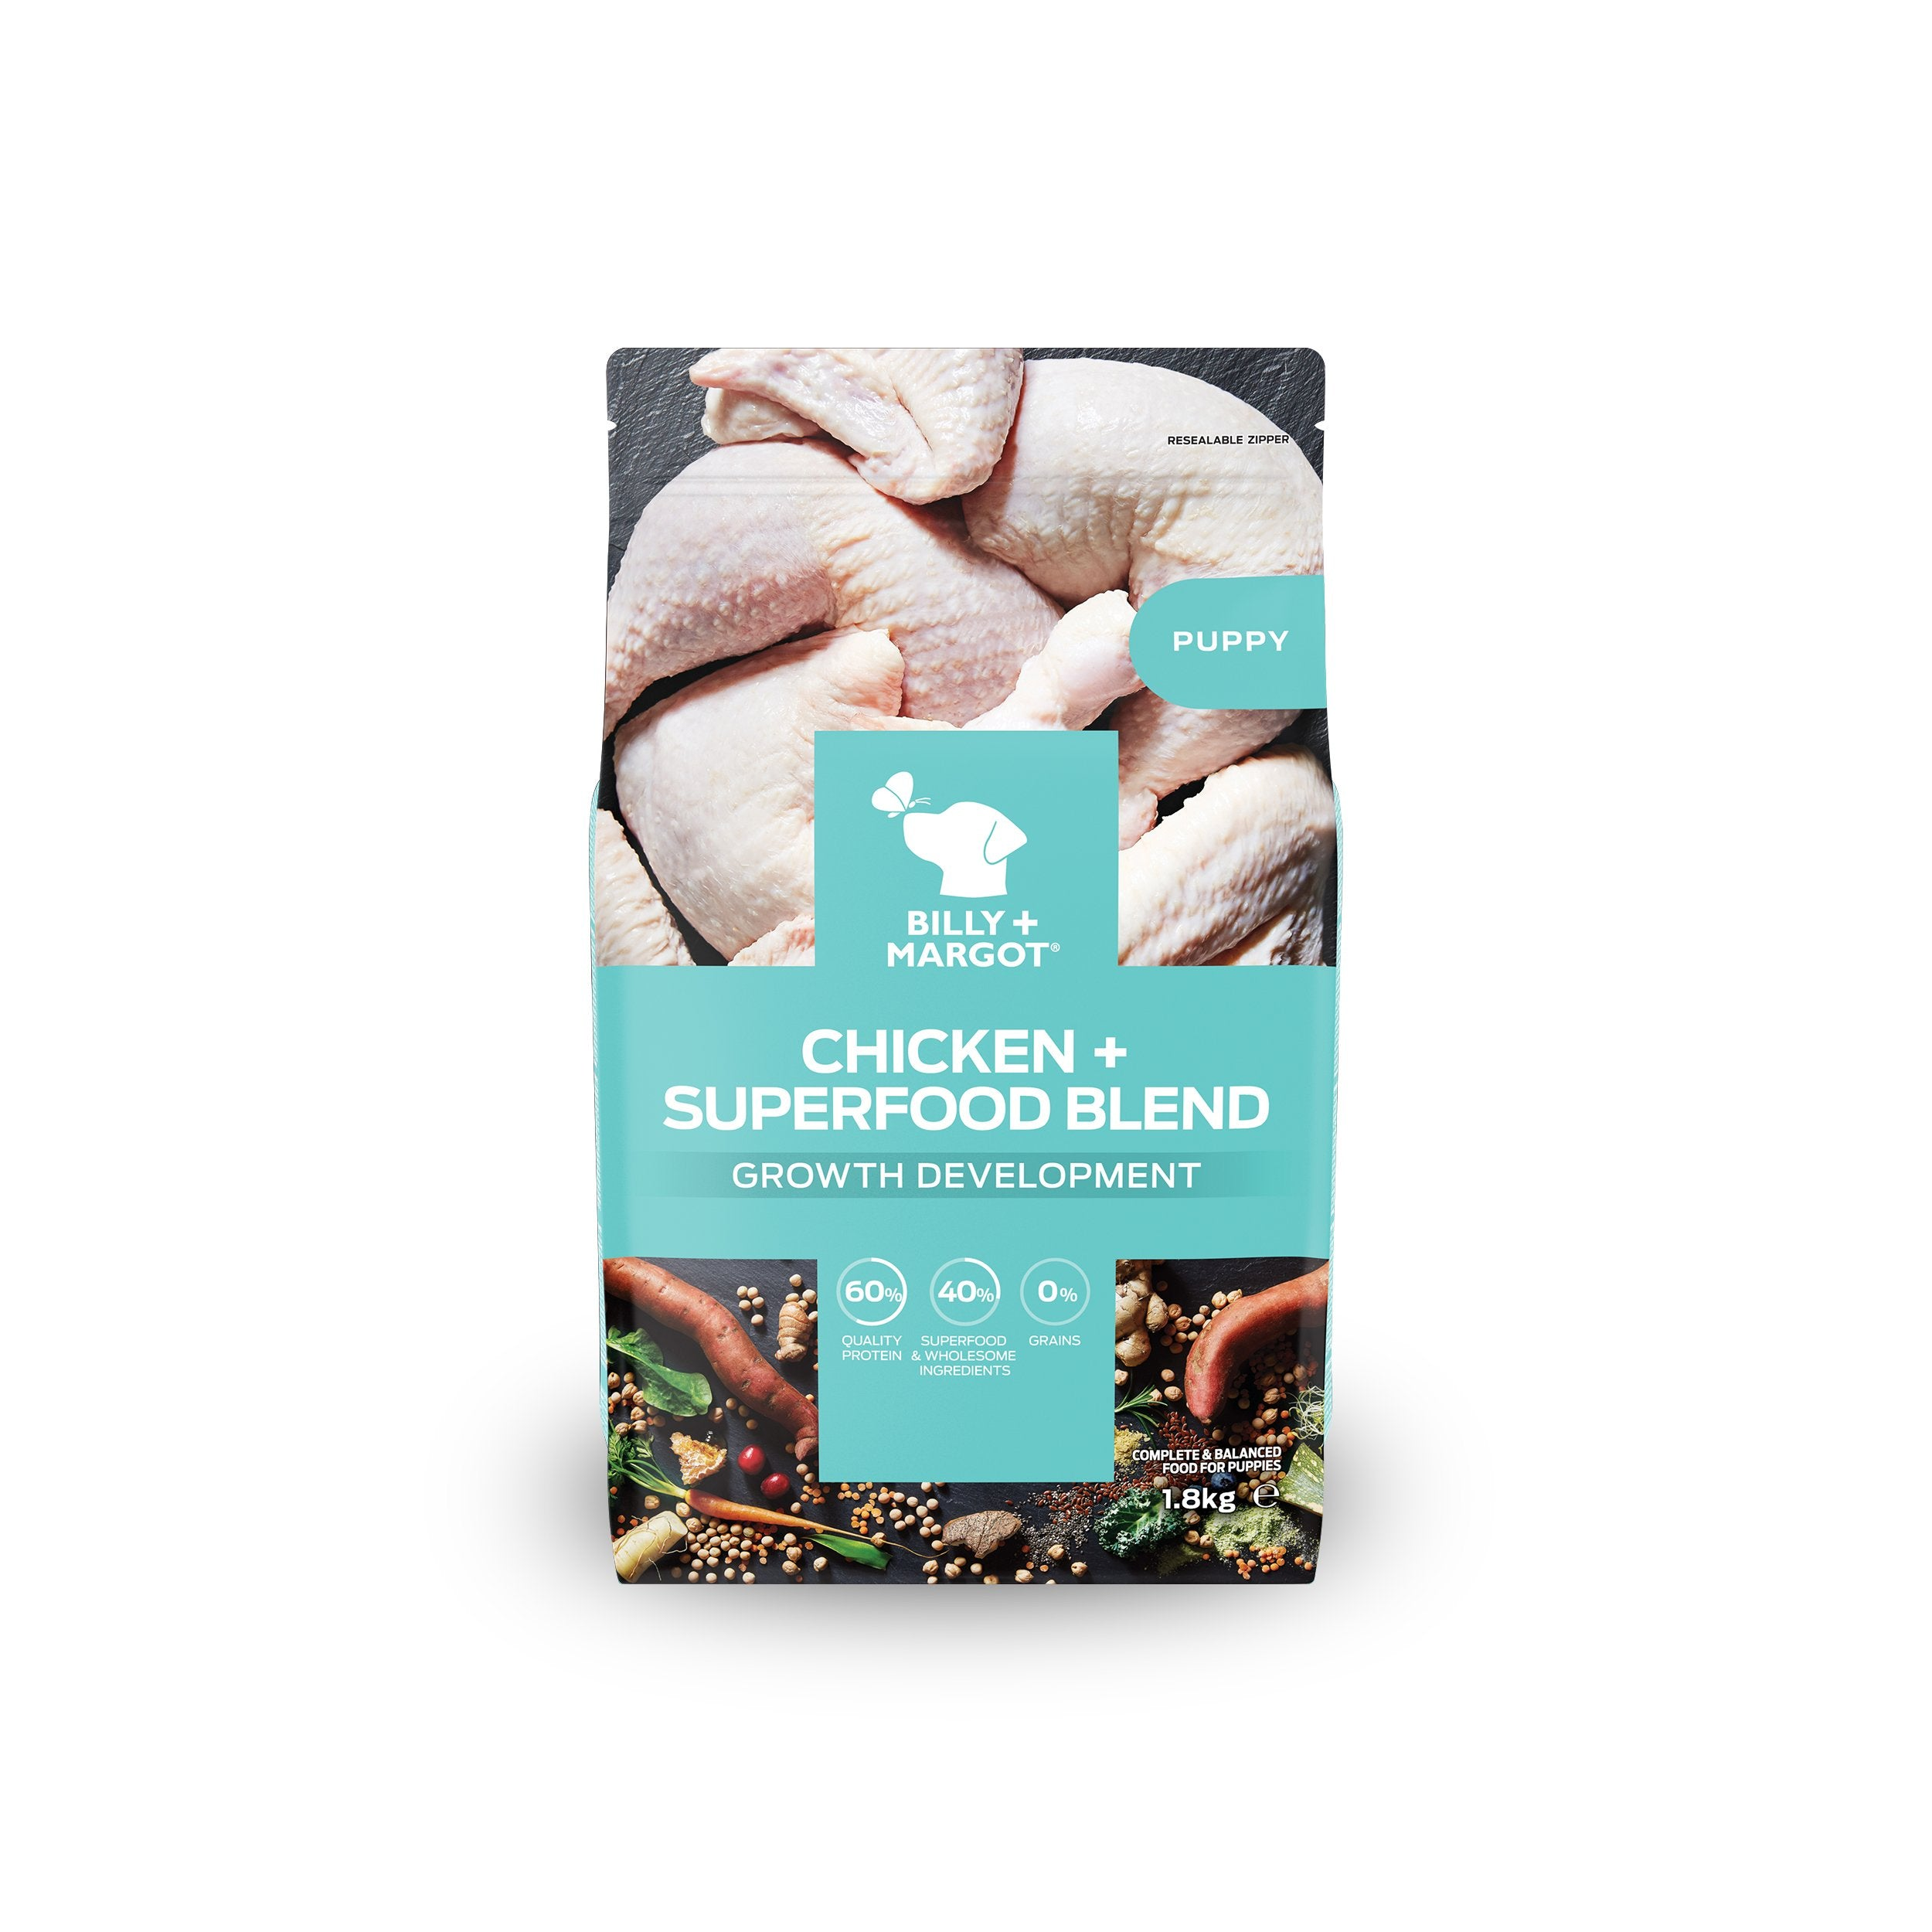 Billy + Margot Puppy: Chicken + Superfood Blend Dry Dog Food